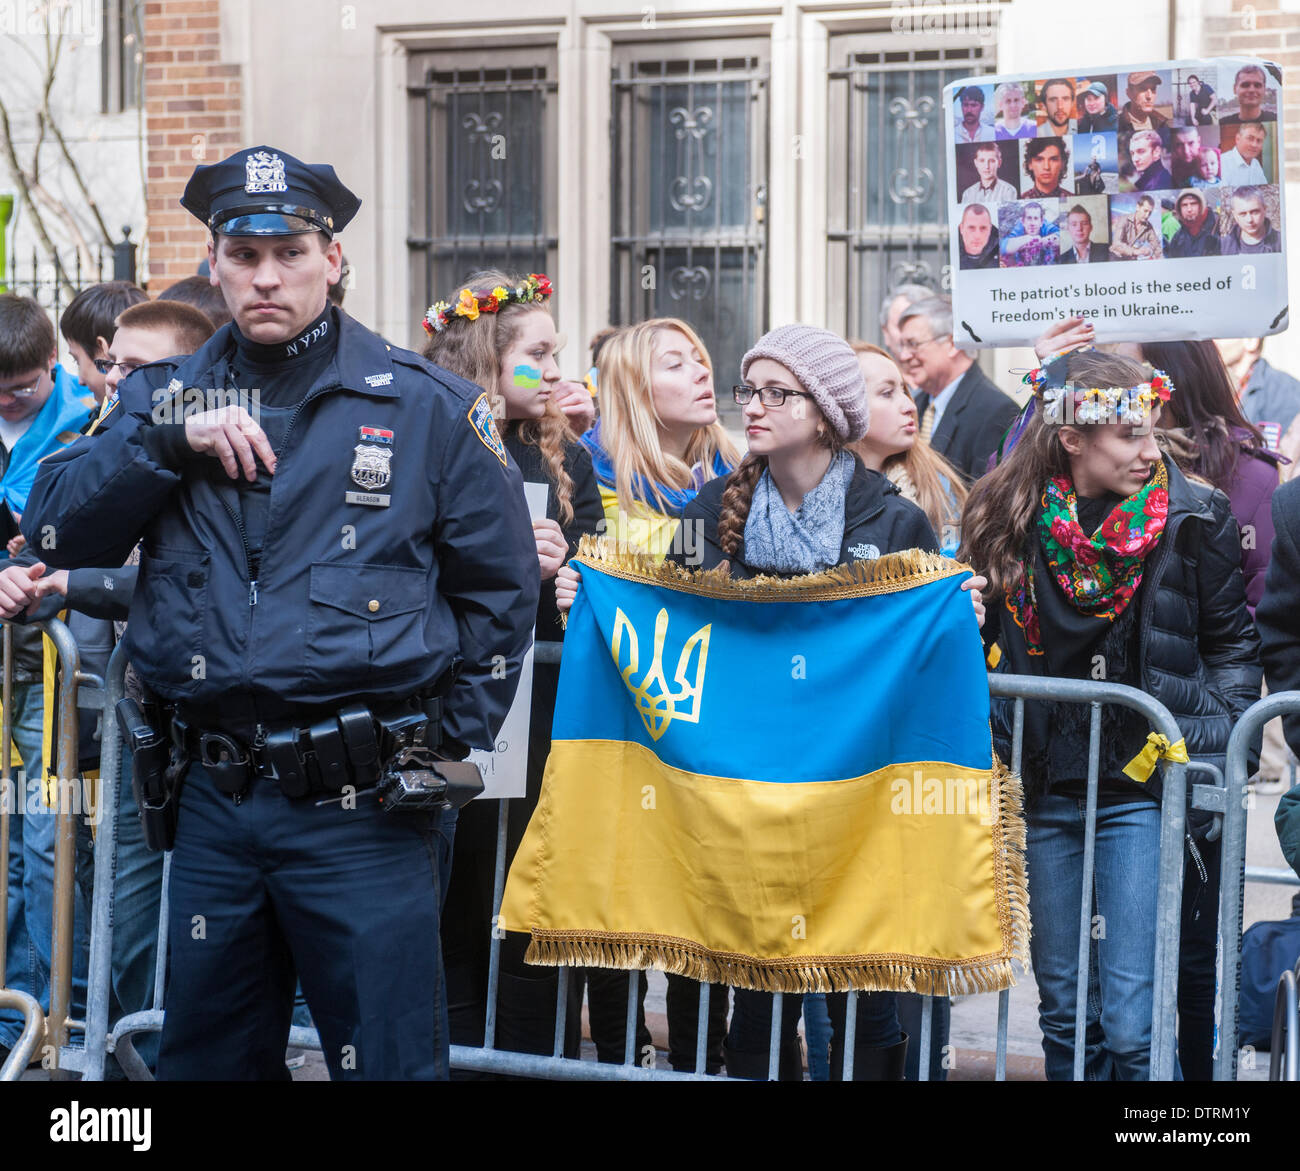 New York, USA. 23rd Feb, 2014. Ukrainian-Americans and their supporters rally in front of the Ukrainian Mission Stock Photo